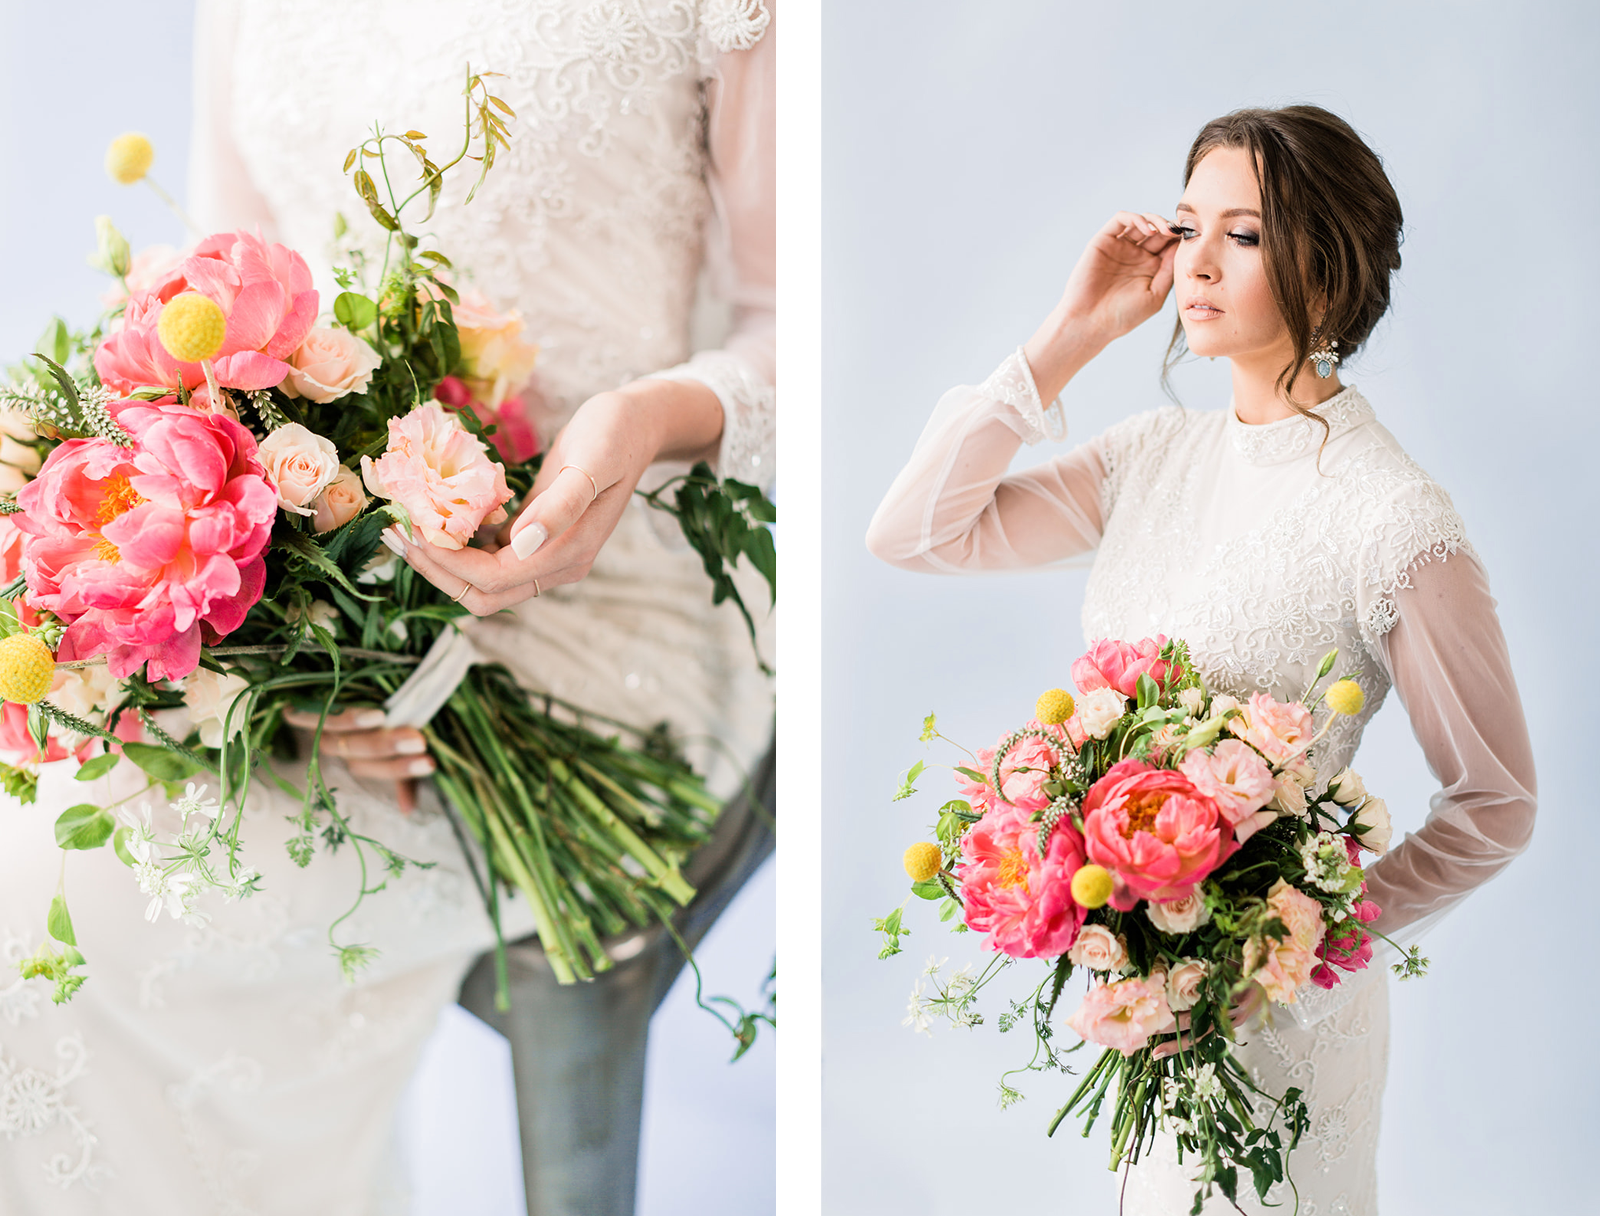 Editorial Bridal Inspiration - Bold florals and a vintage inspired gown in this editorial styled shoot.  Blushed Design: Wedding Invitations and Fine Art Portraits